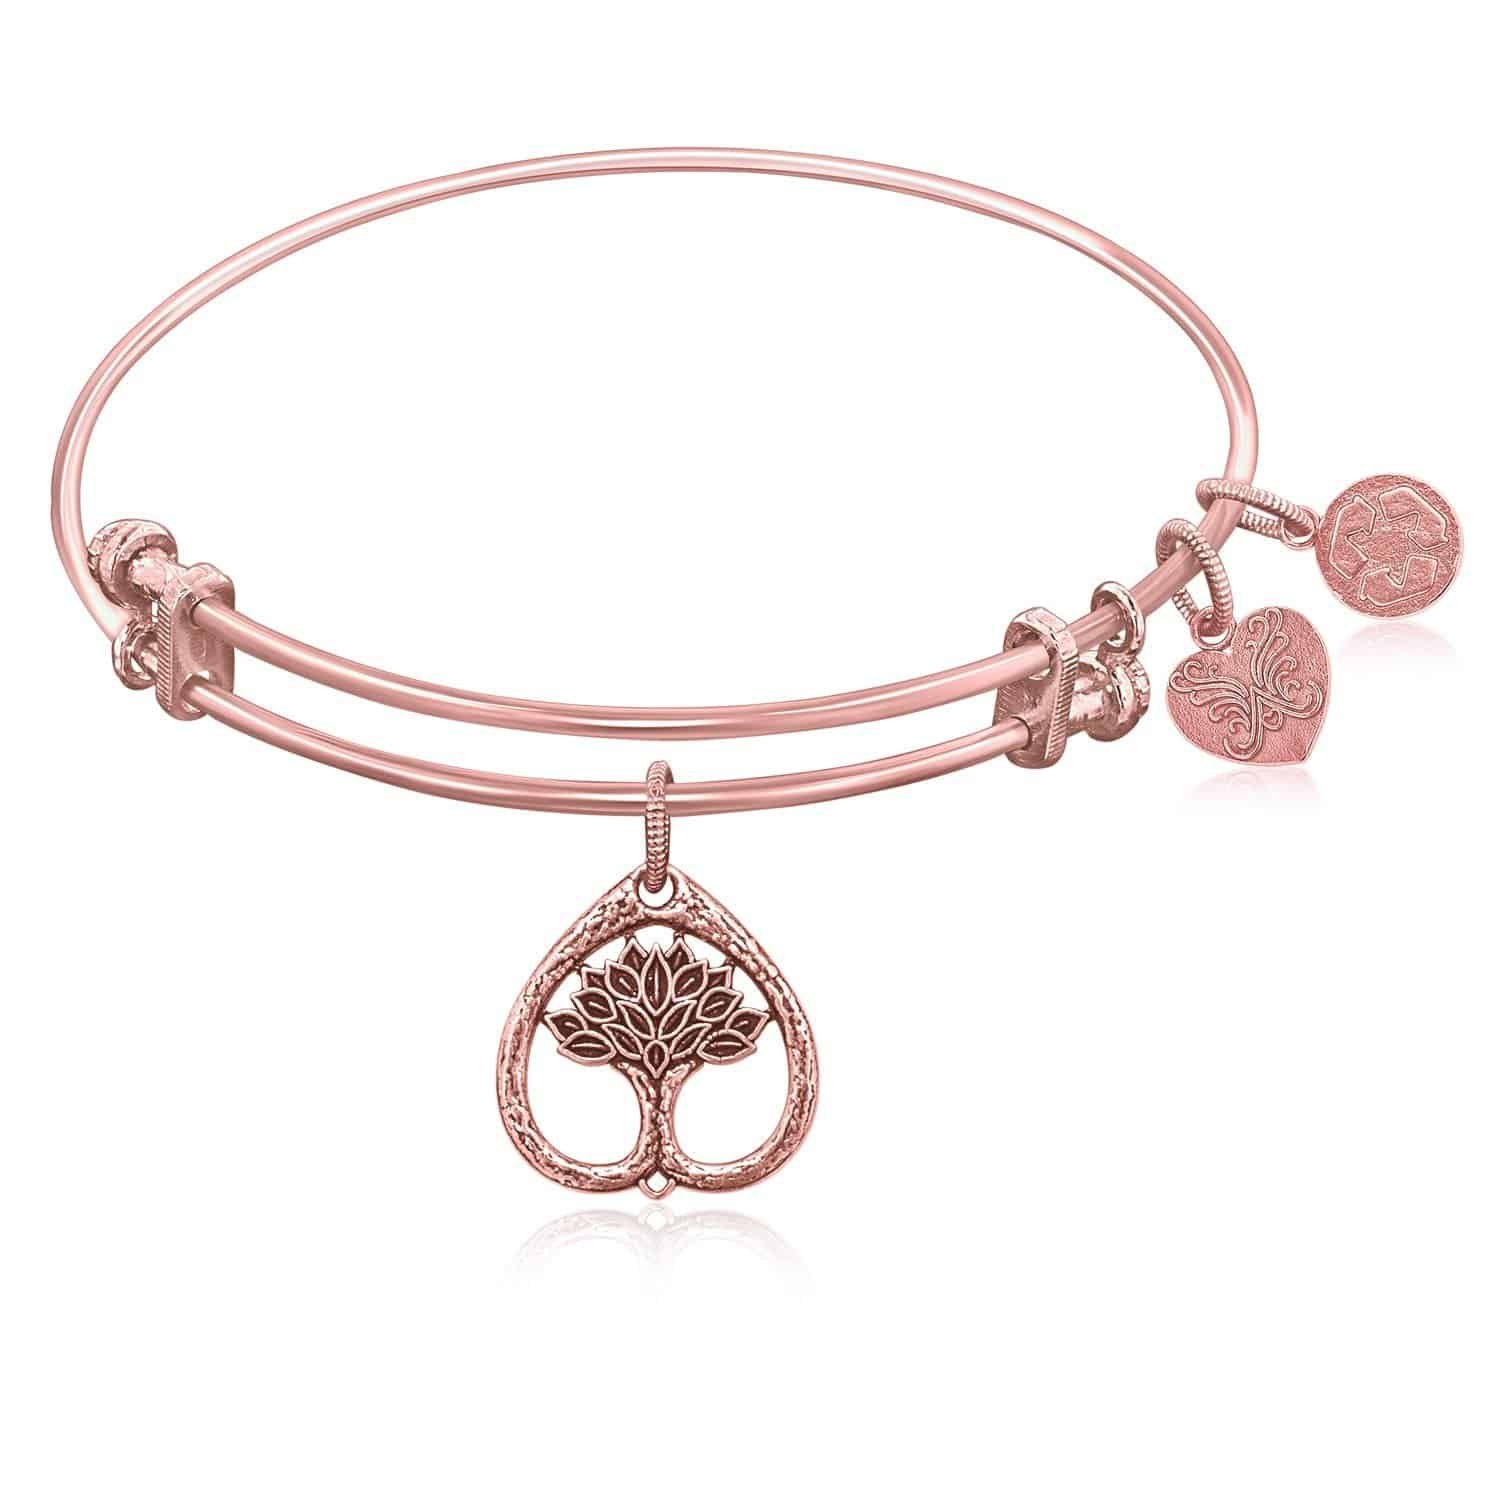 Expandable Bangle in Pink Tone Brass with Tree Of Life Growth Maturity Symbol